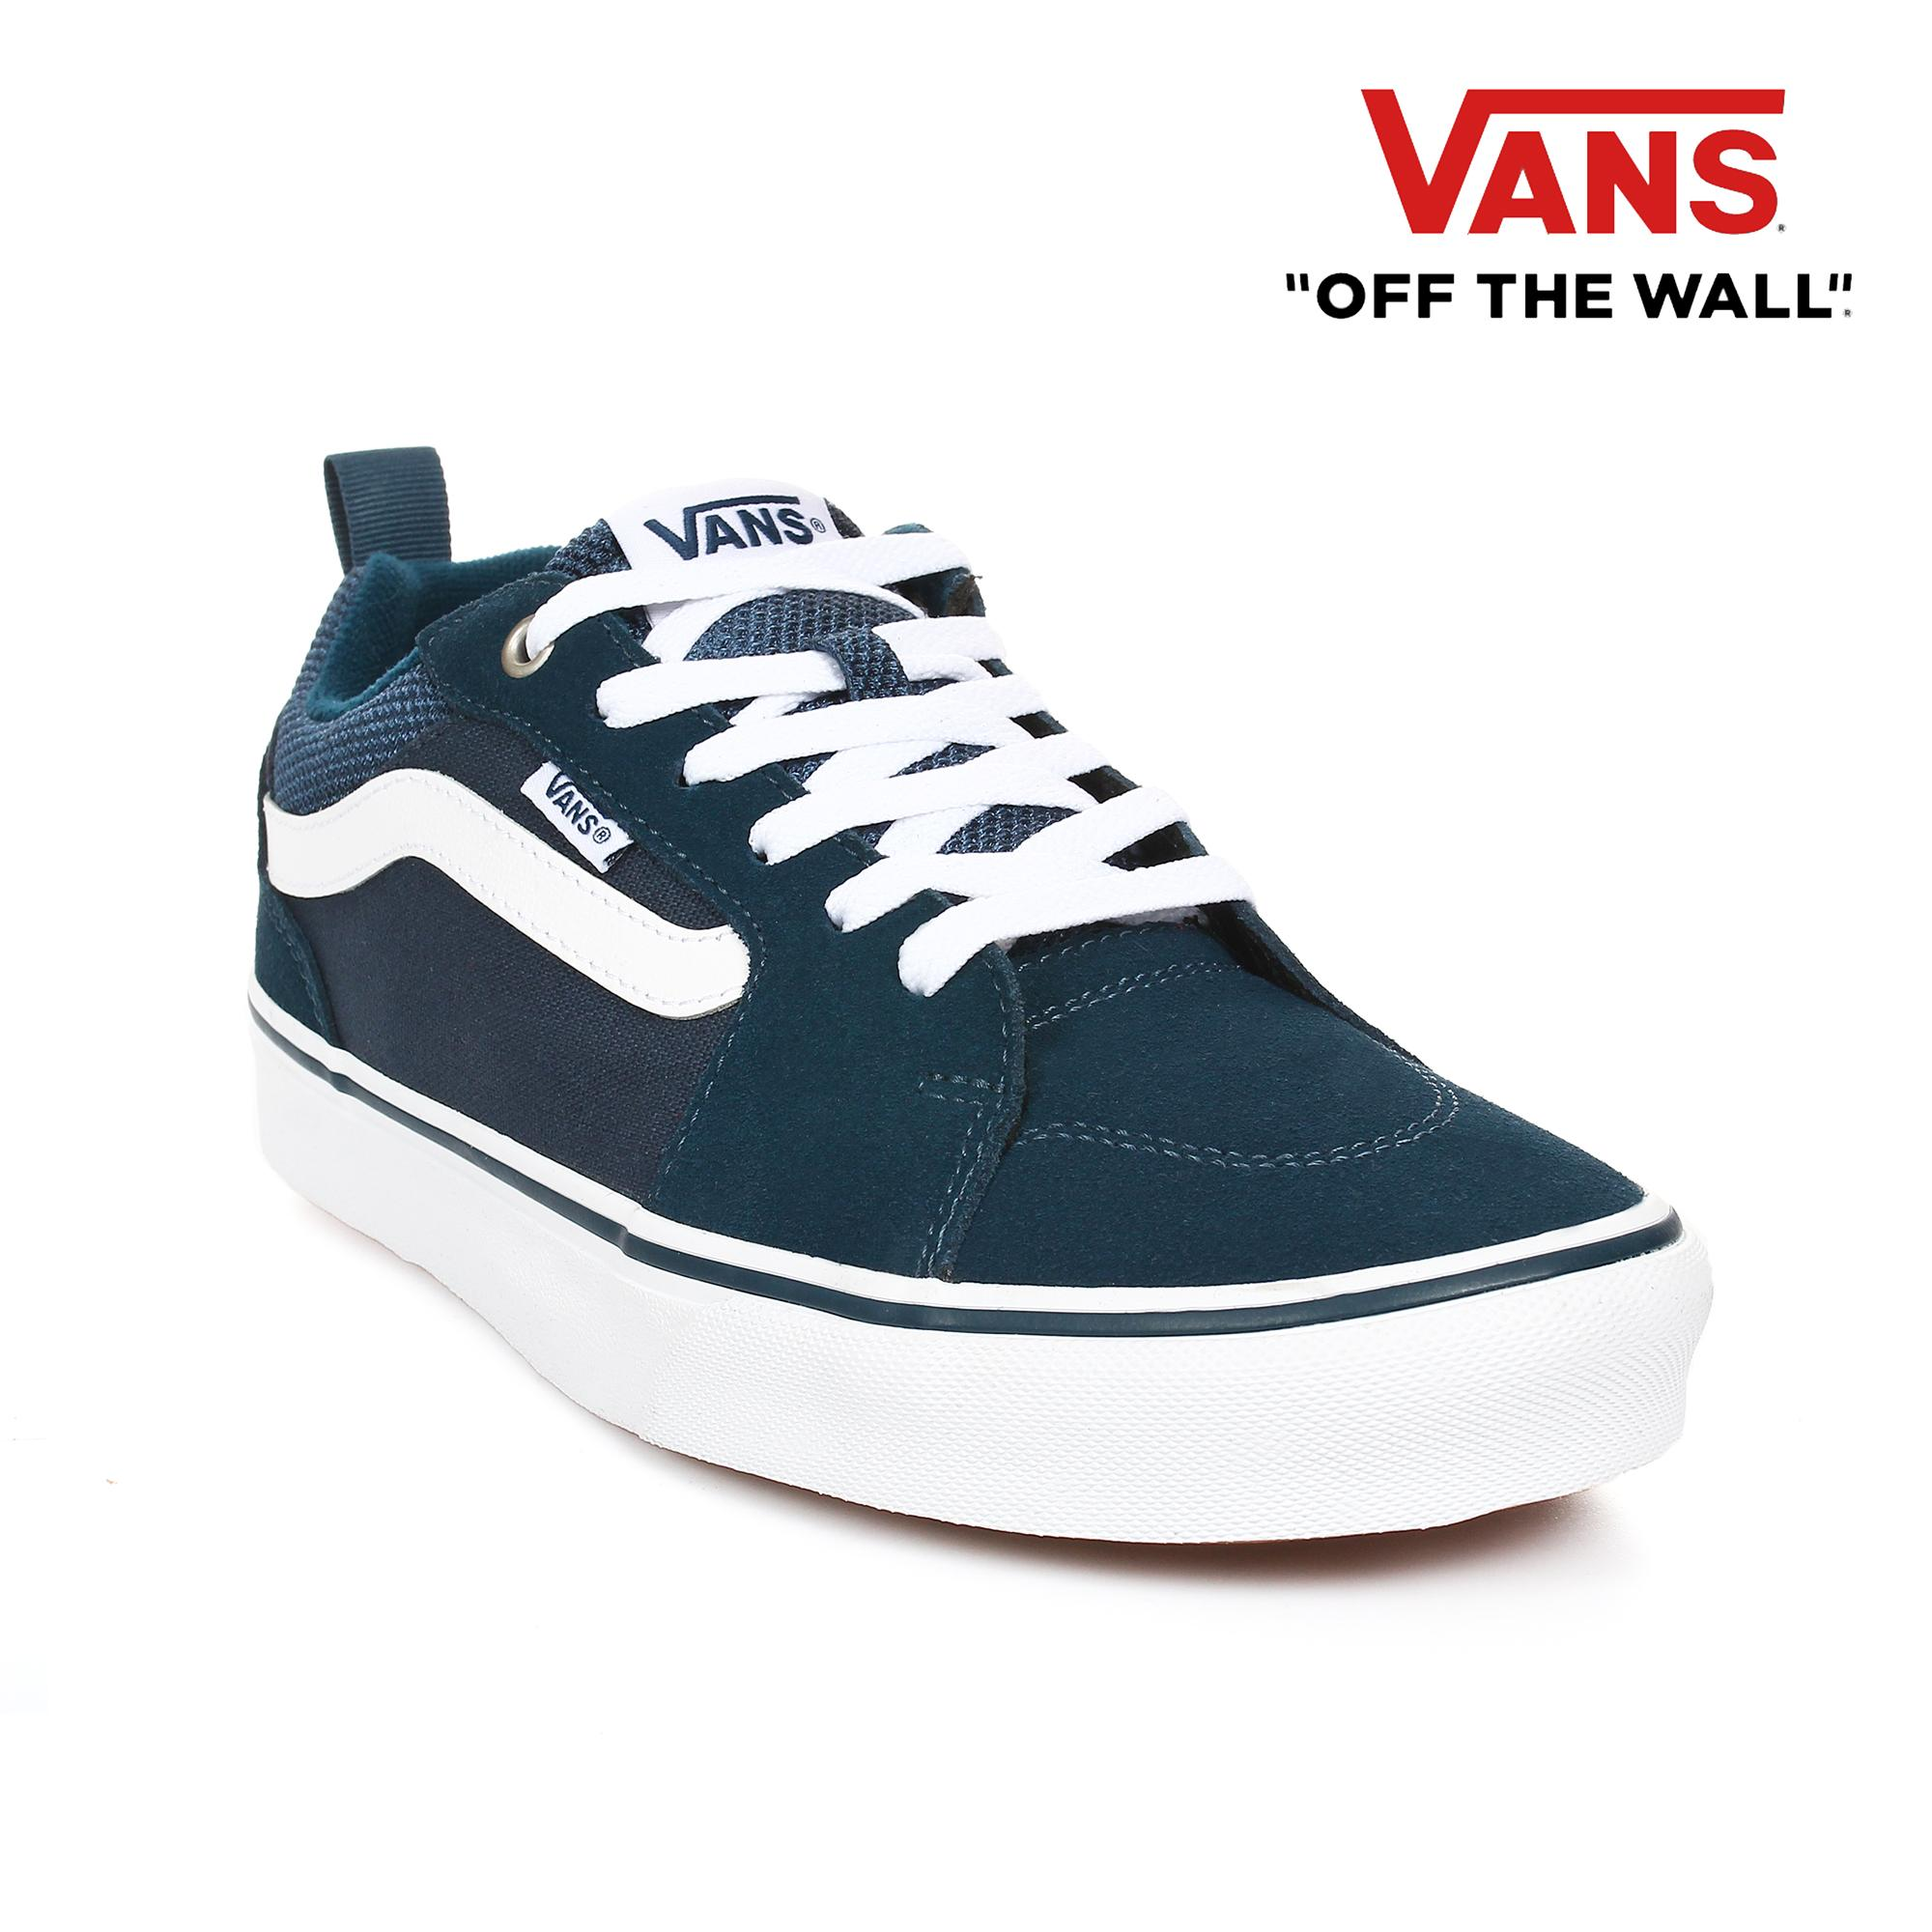 e29bd2711f5e4b Vans Shoes for Men Philippines - Vans Men s Shoes for sale - prices ...